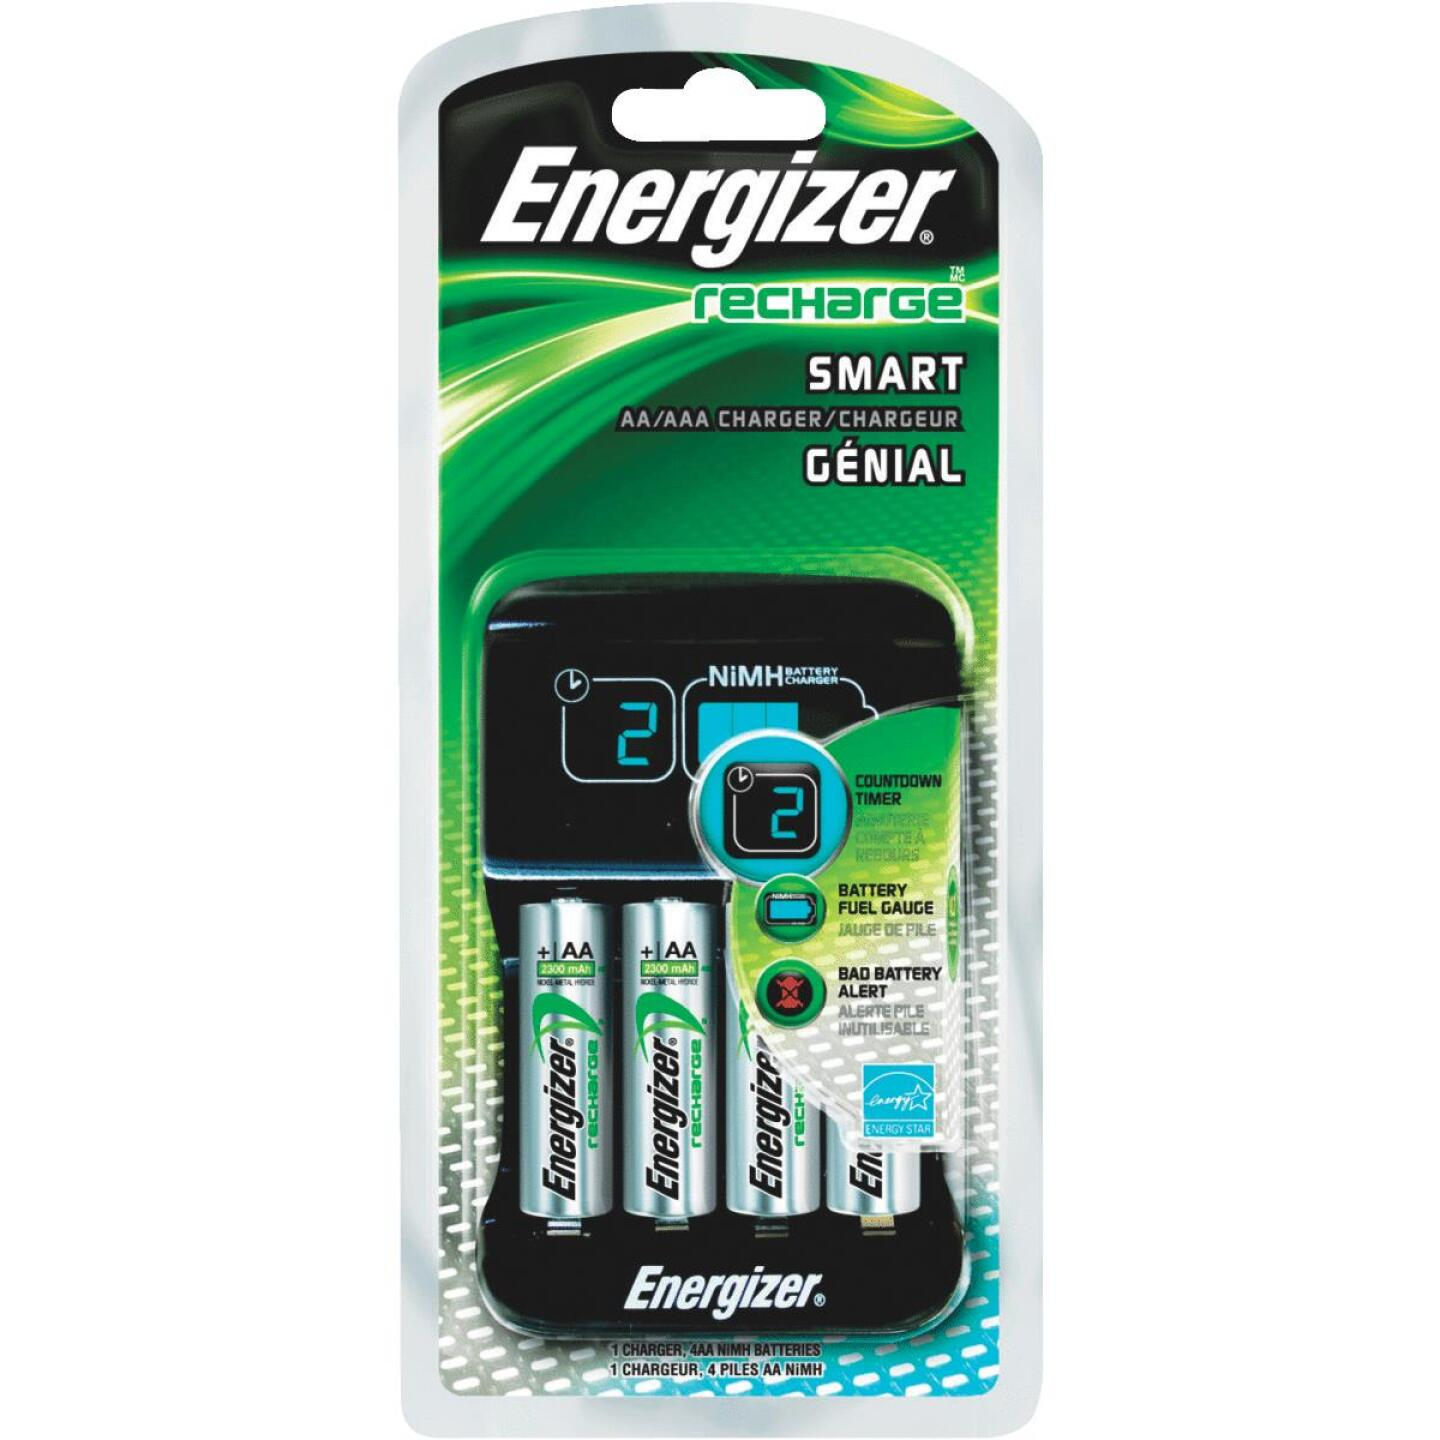 Energizer (2) or (4) AA, or AAA NiMH Smart Battery Charger Image 2